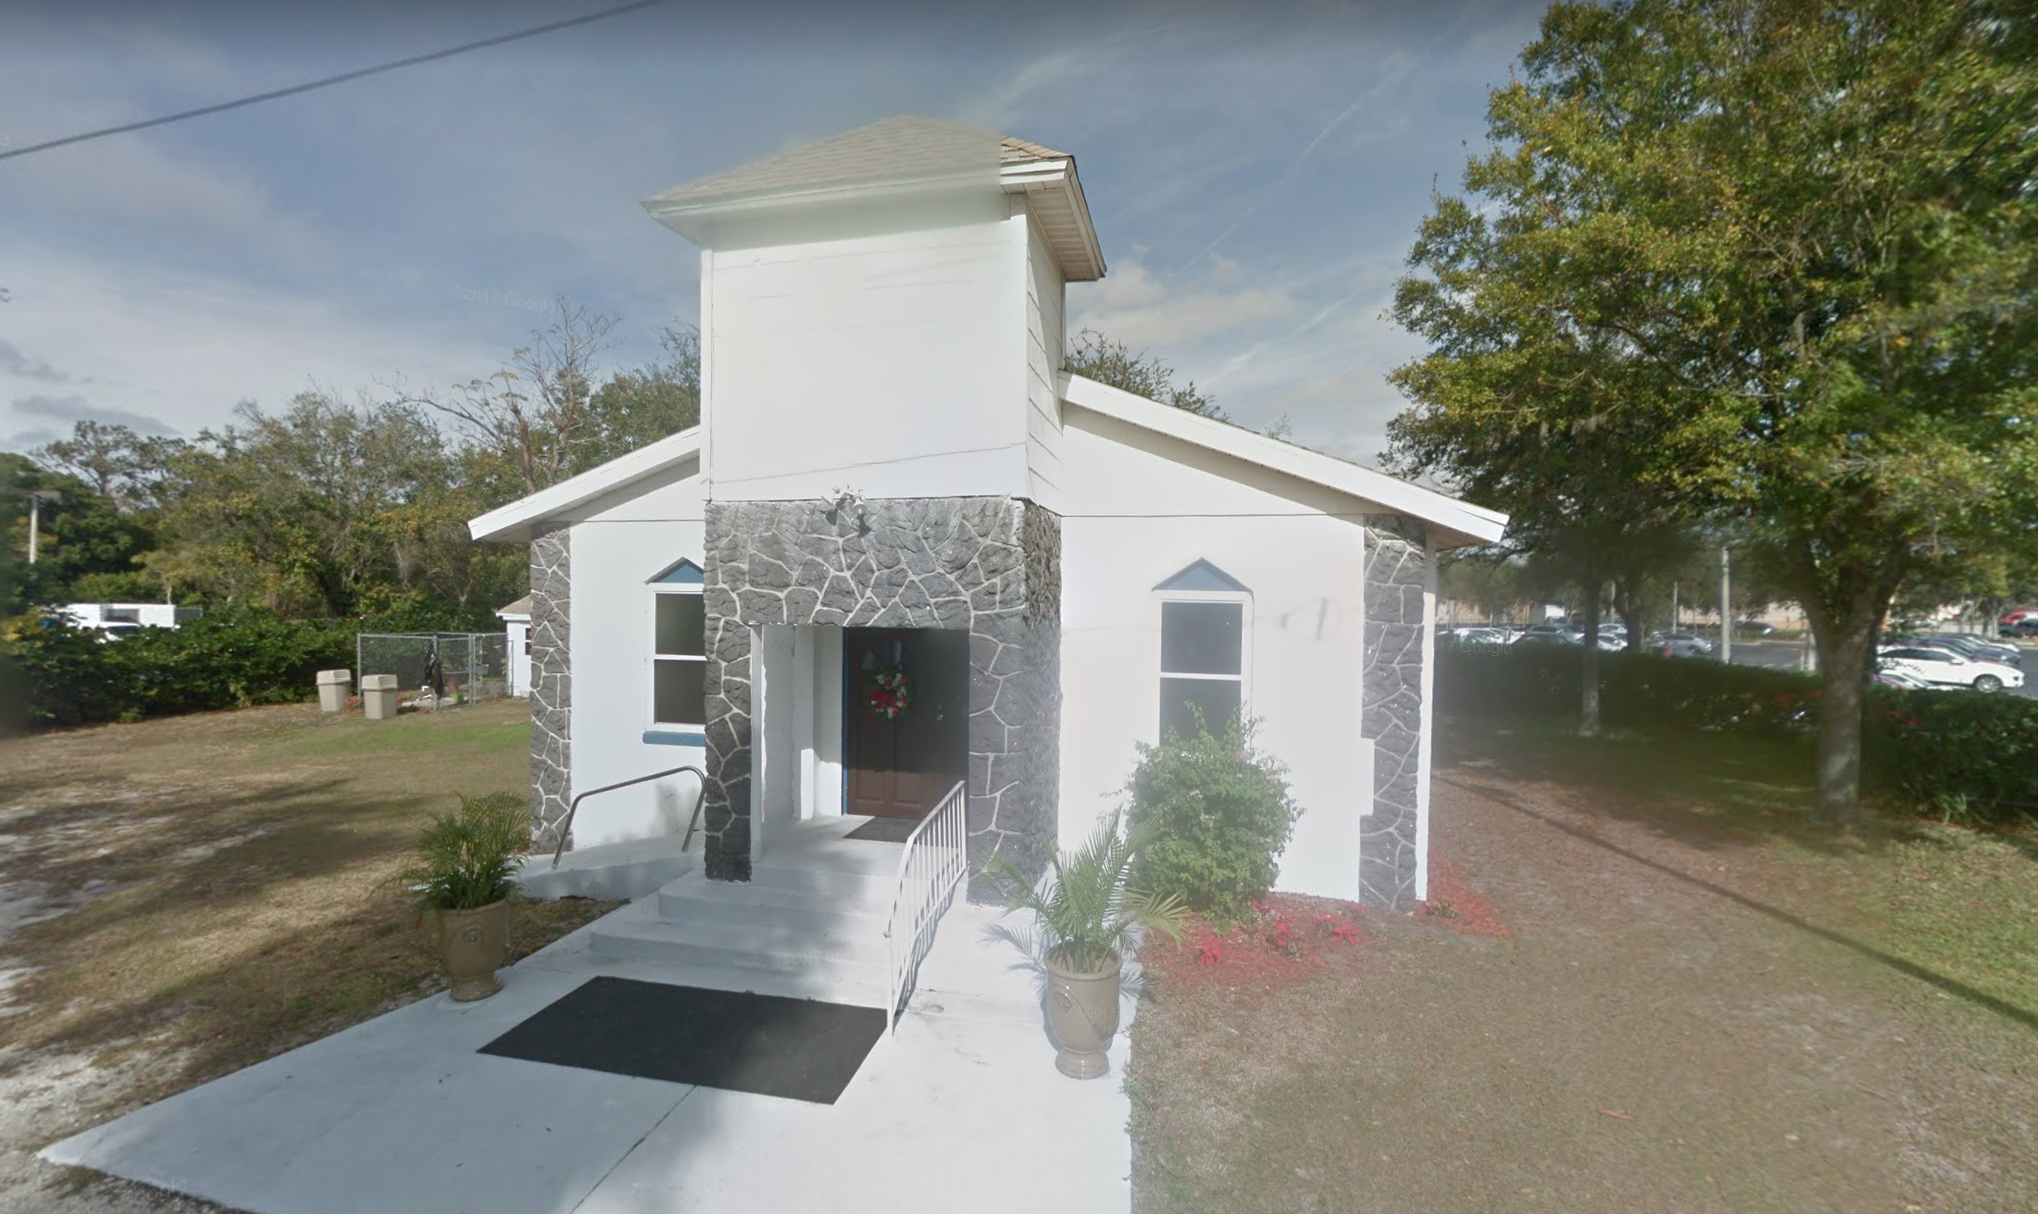 Google Street View  of the new church building, tucked next to the Porsche dealership.